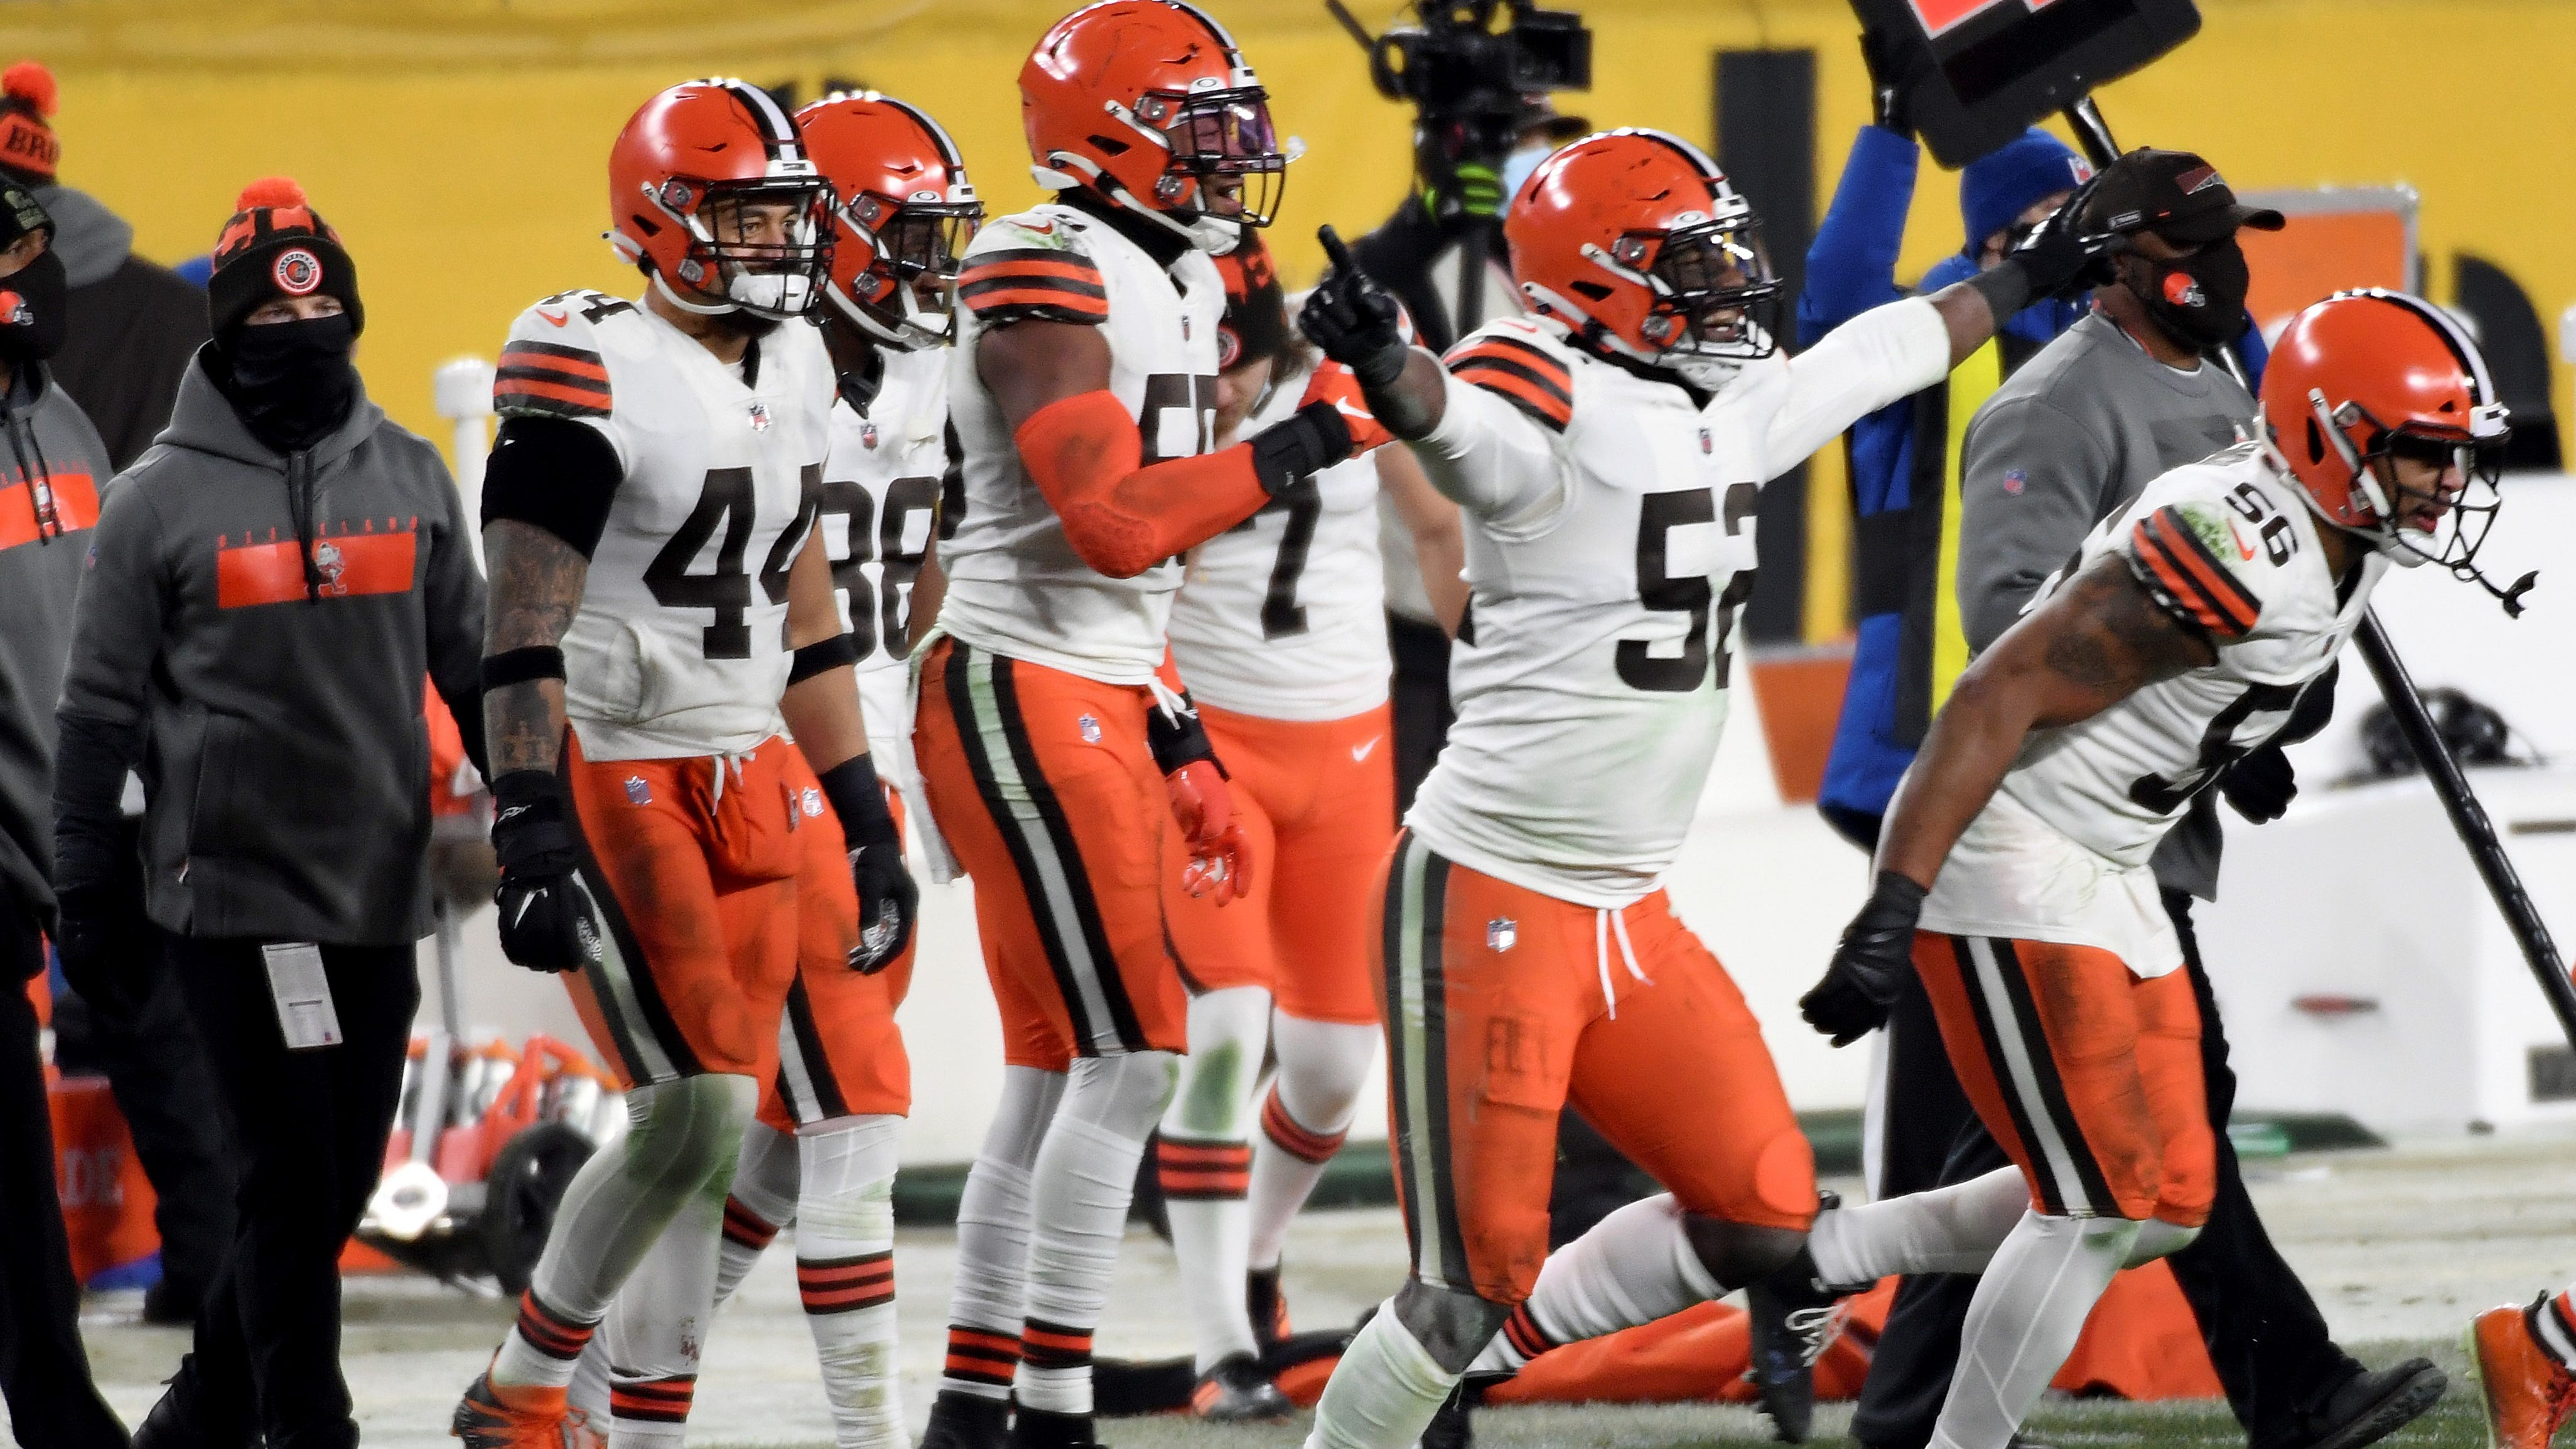 Something you haven't seen in 26 years: the Cleveland Browns celebrating an NFL playoff victory.